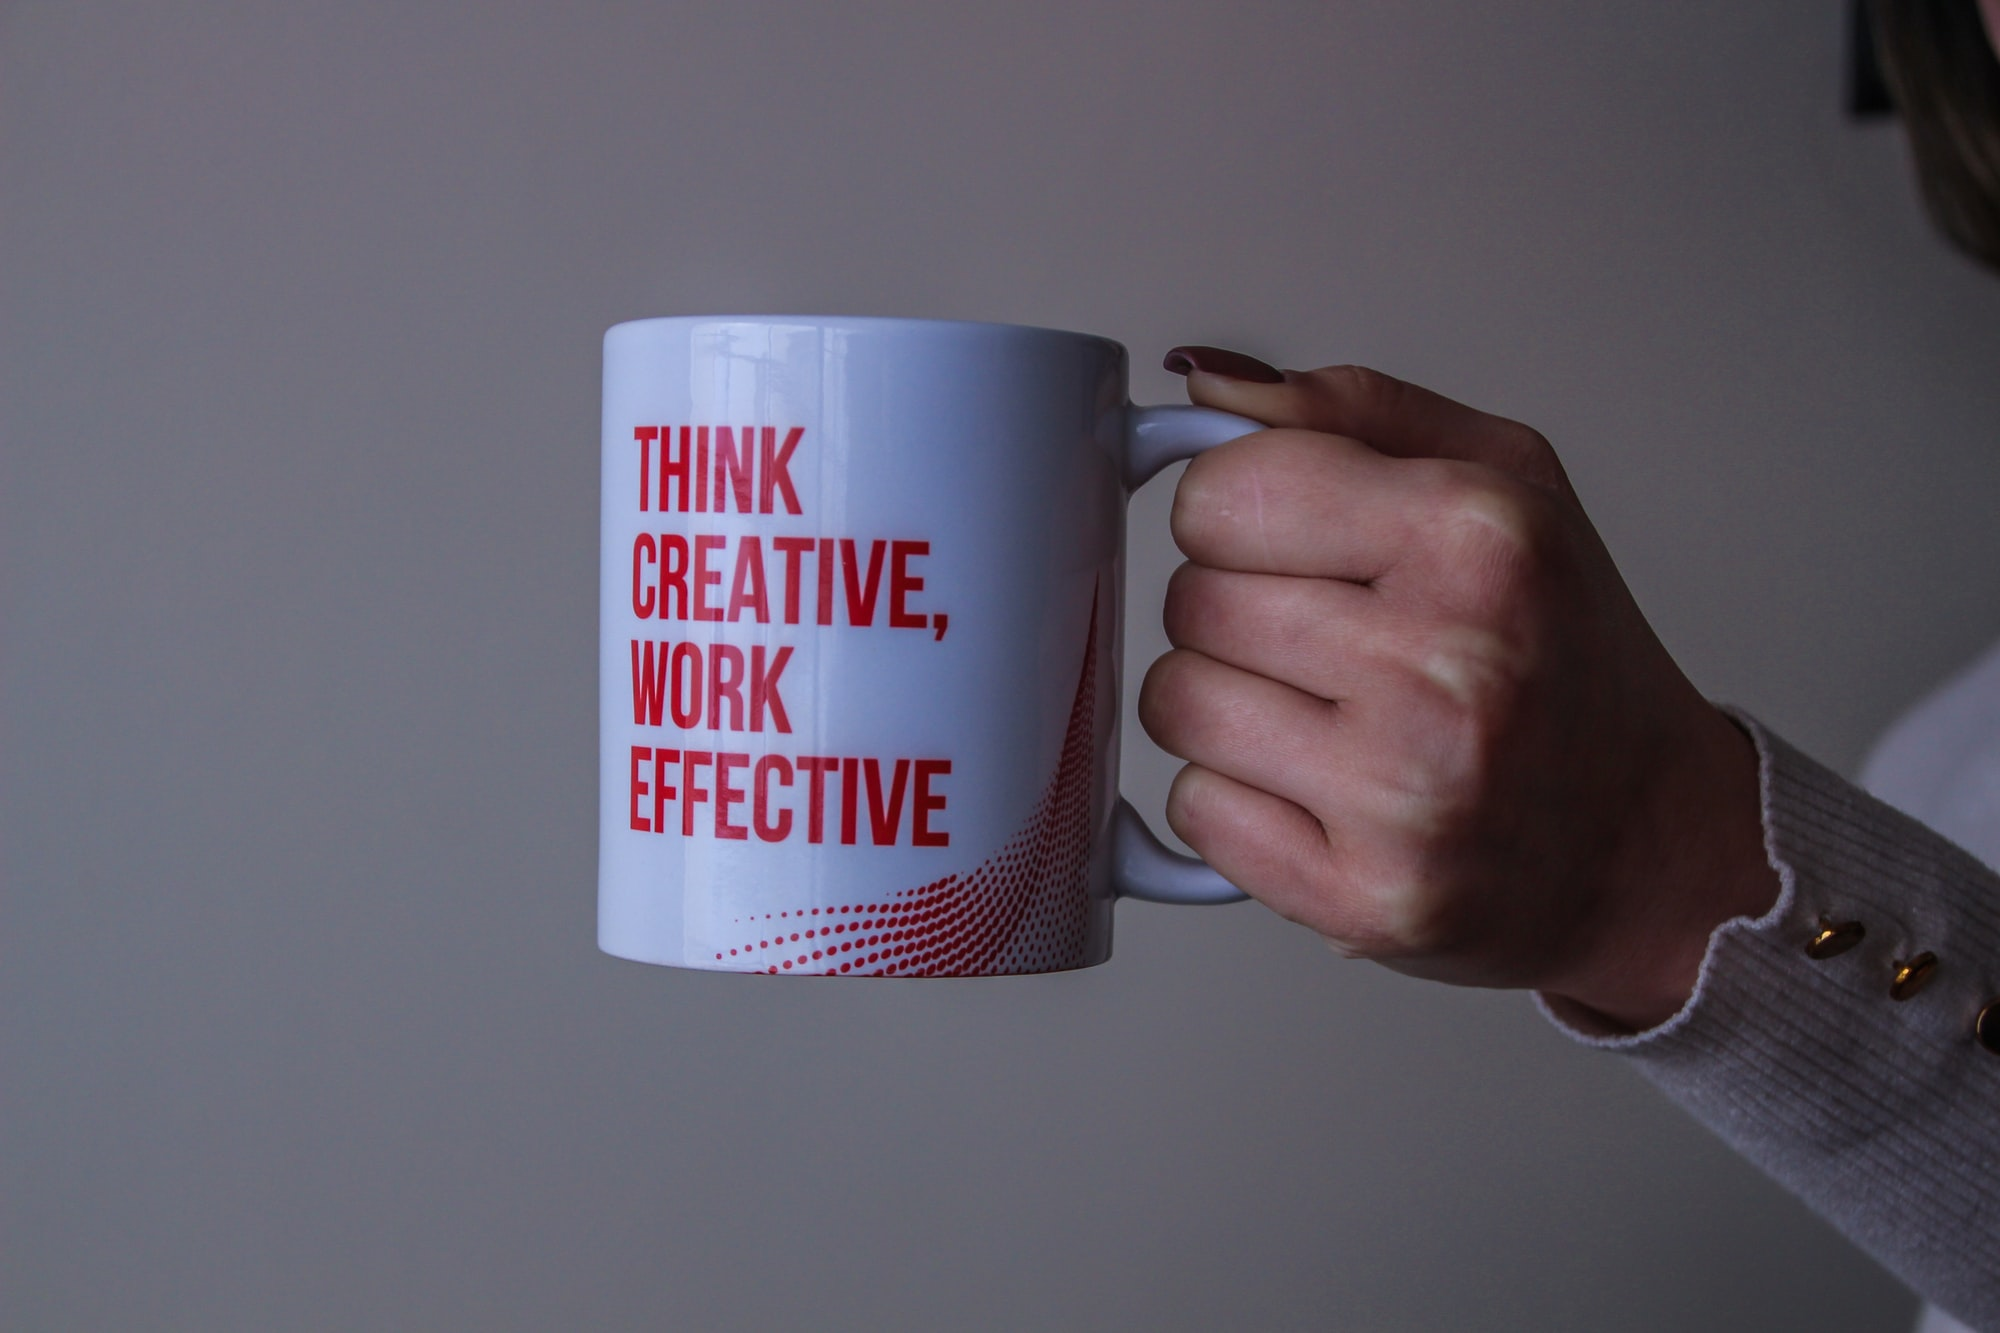 Two Notes Tuesday: How to Be Effective and Make Better Decisions